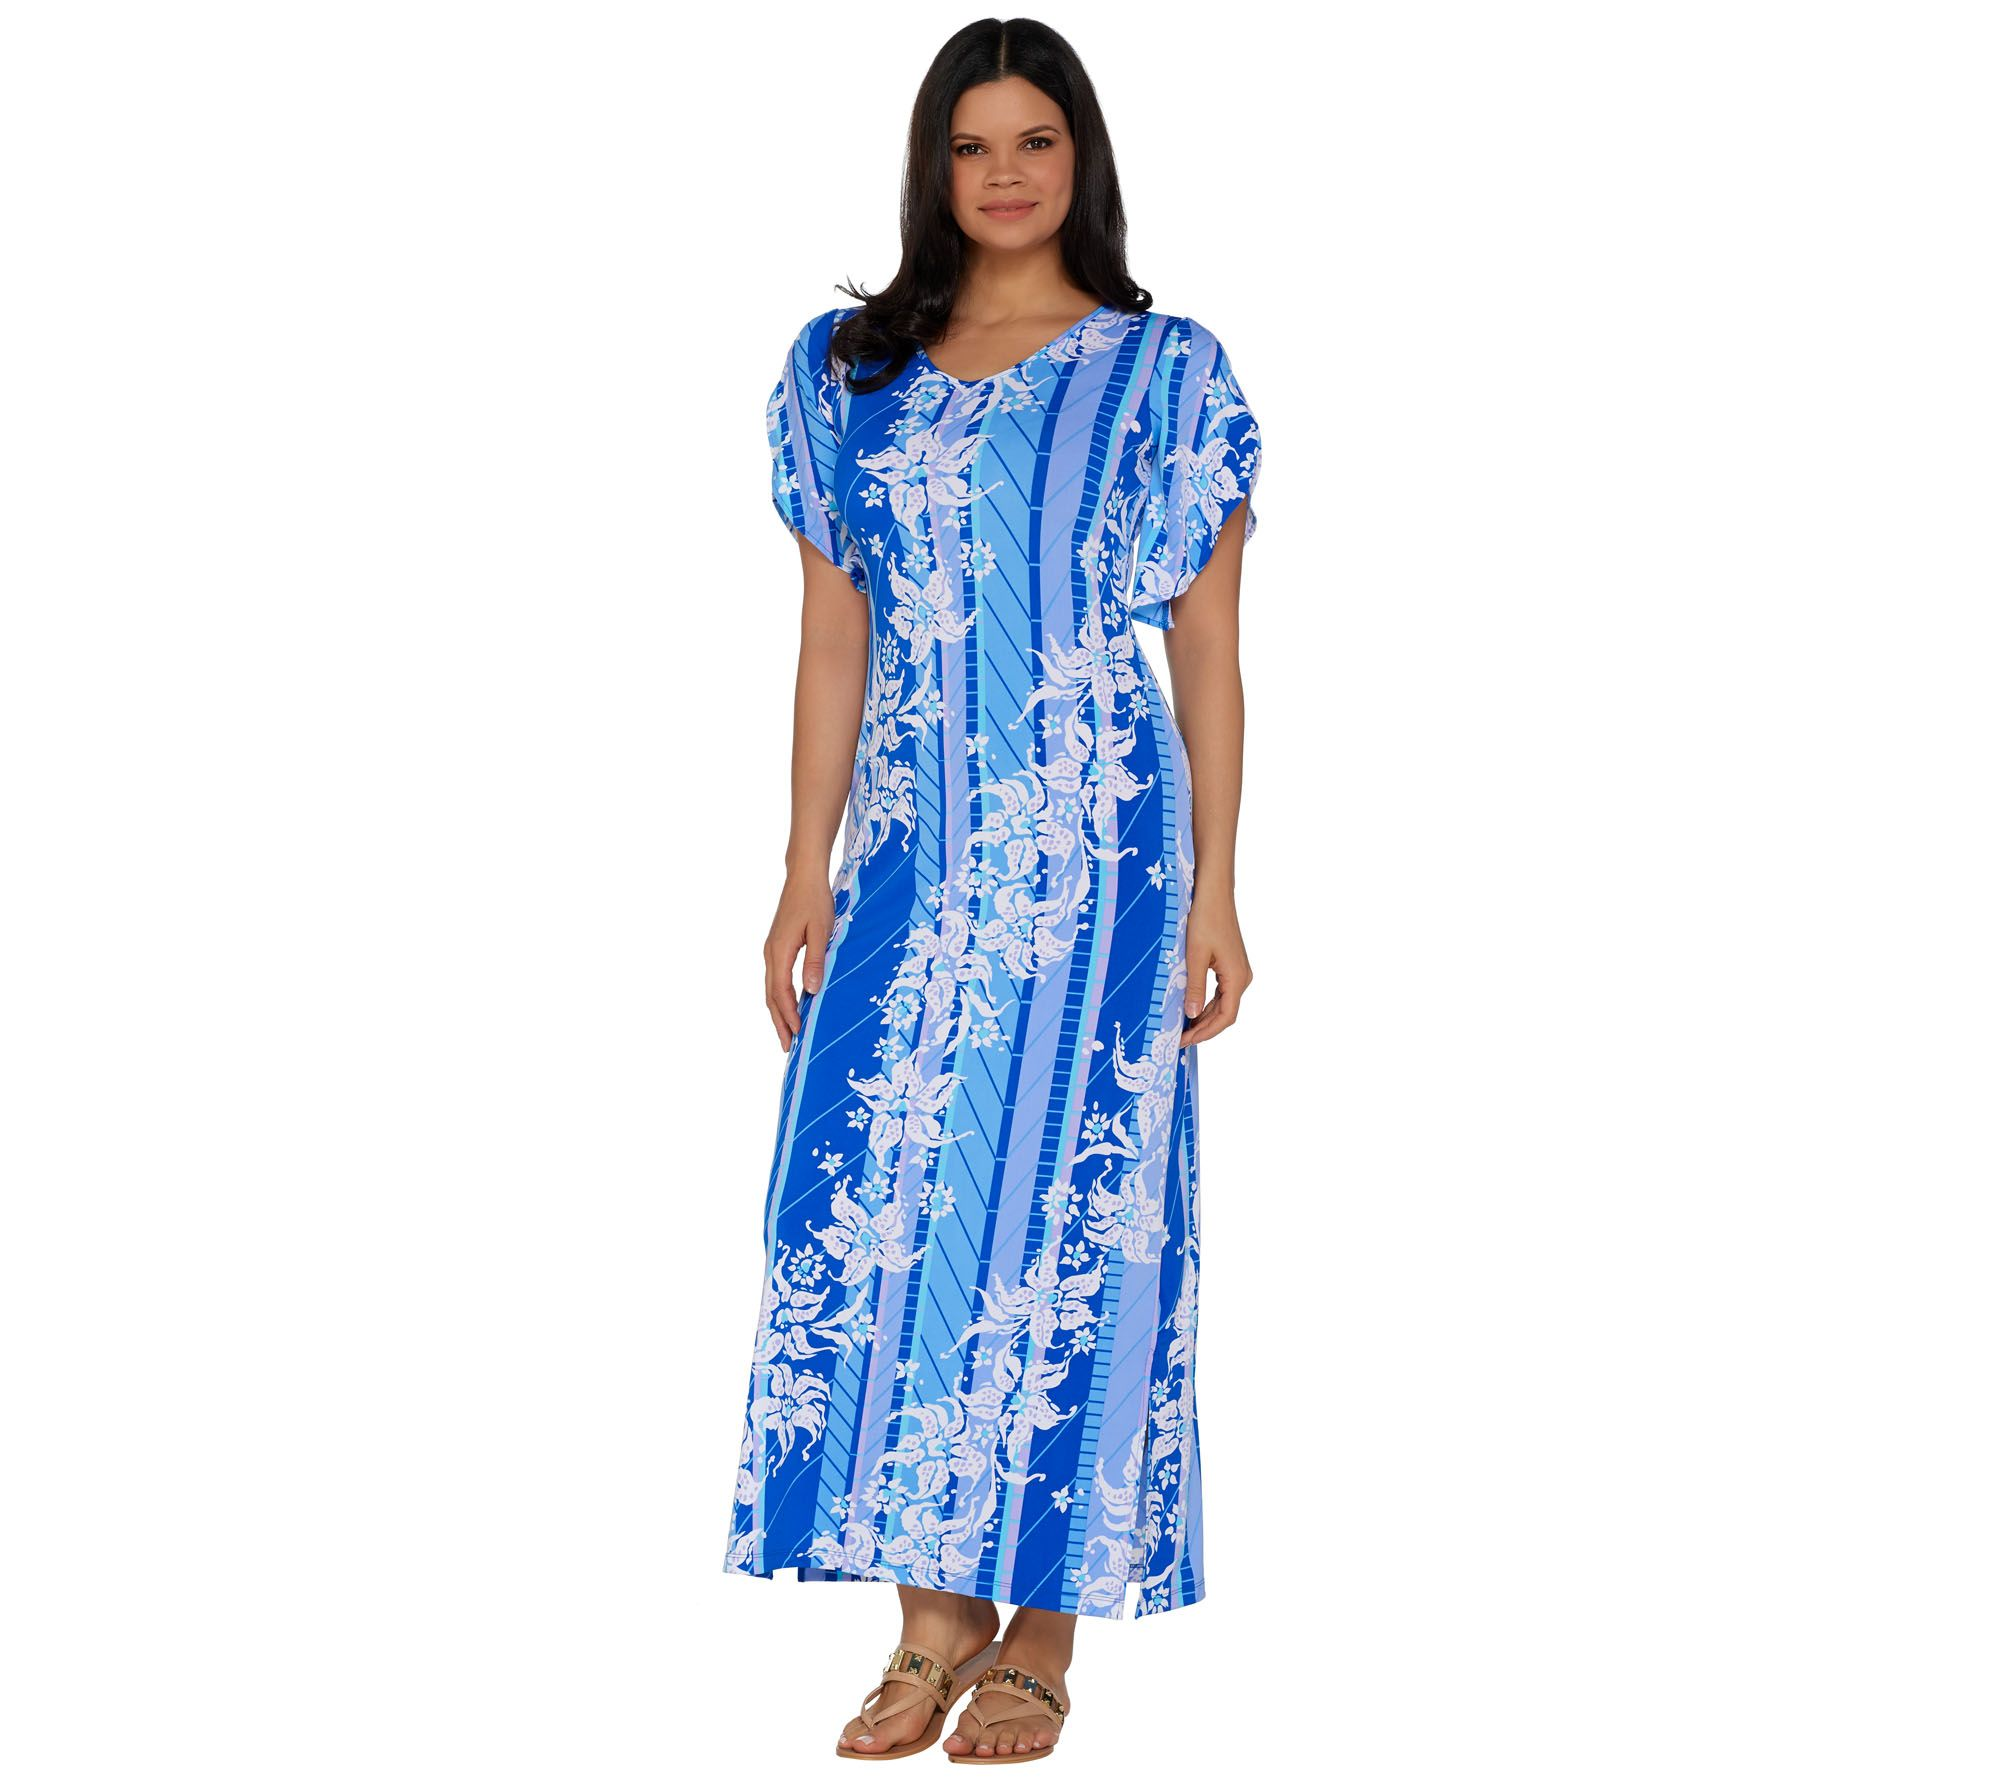 Christmas dress attire for age 57 - Bob Mackie S Floral Printed Tulip Sleeve Knit Maxi Dress A290712